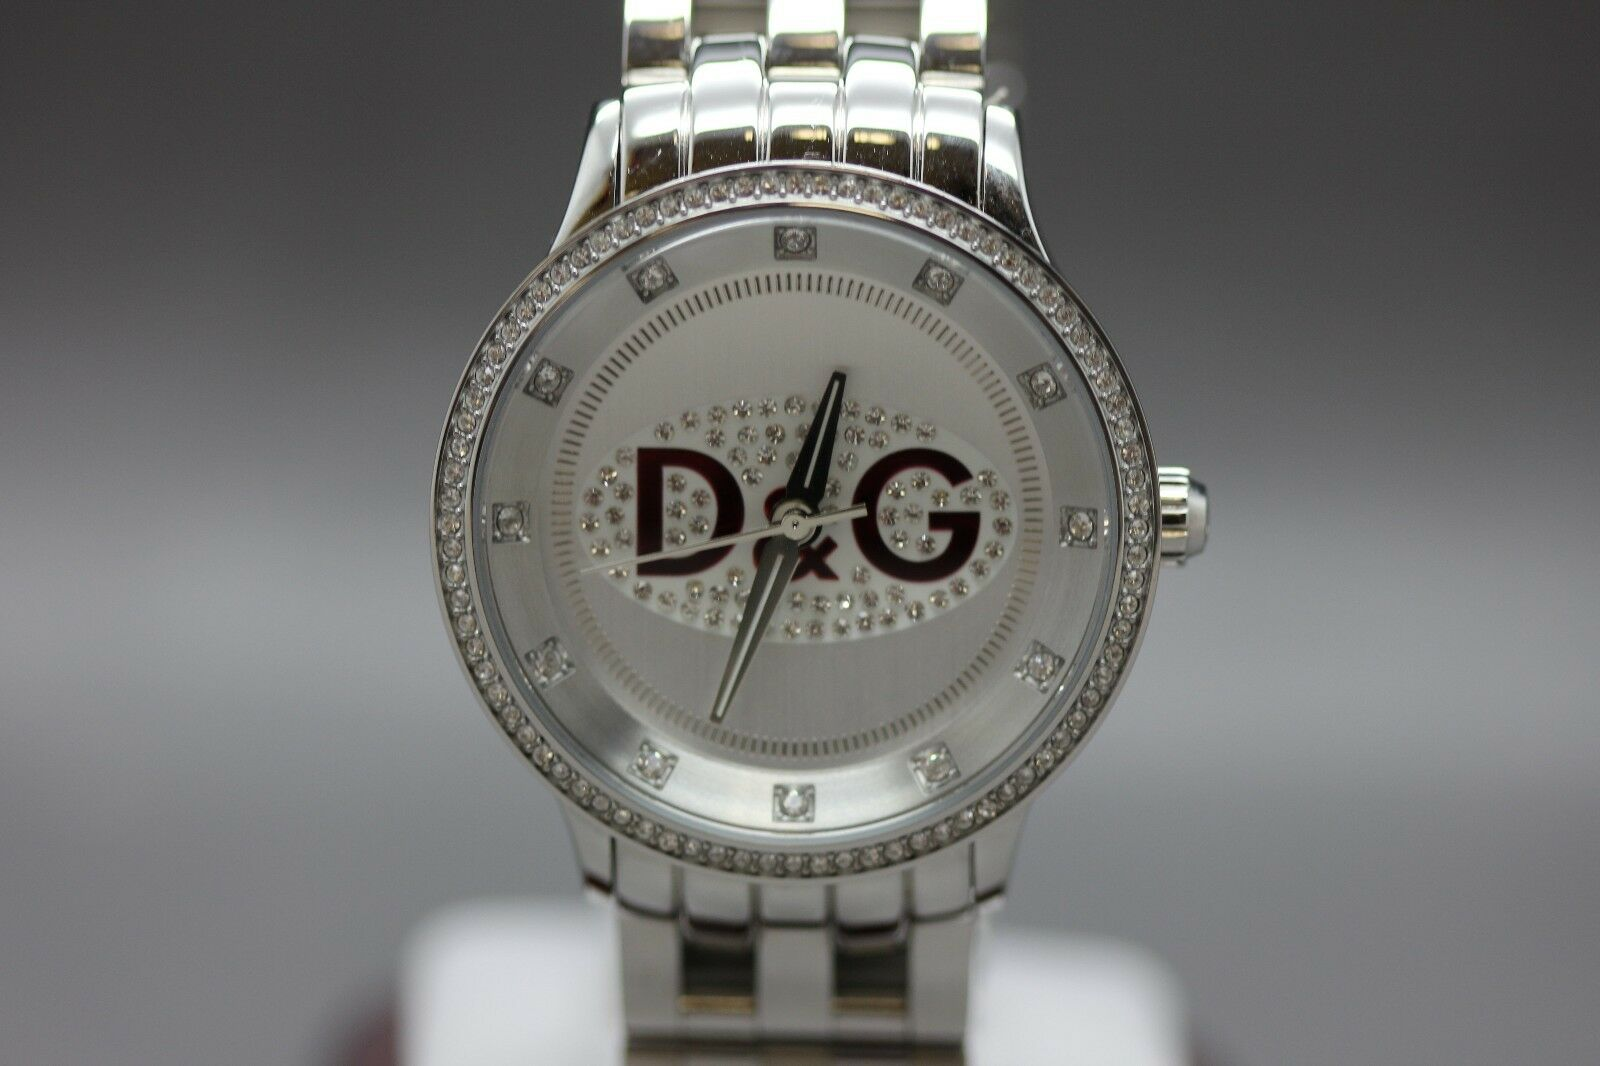 Dolce & Gabbana Prime Time Watch 1 of 8Only 1 available ...